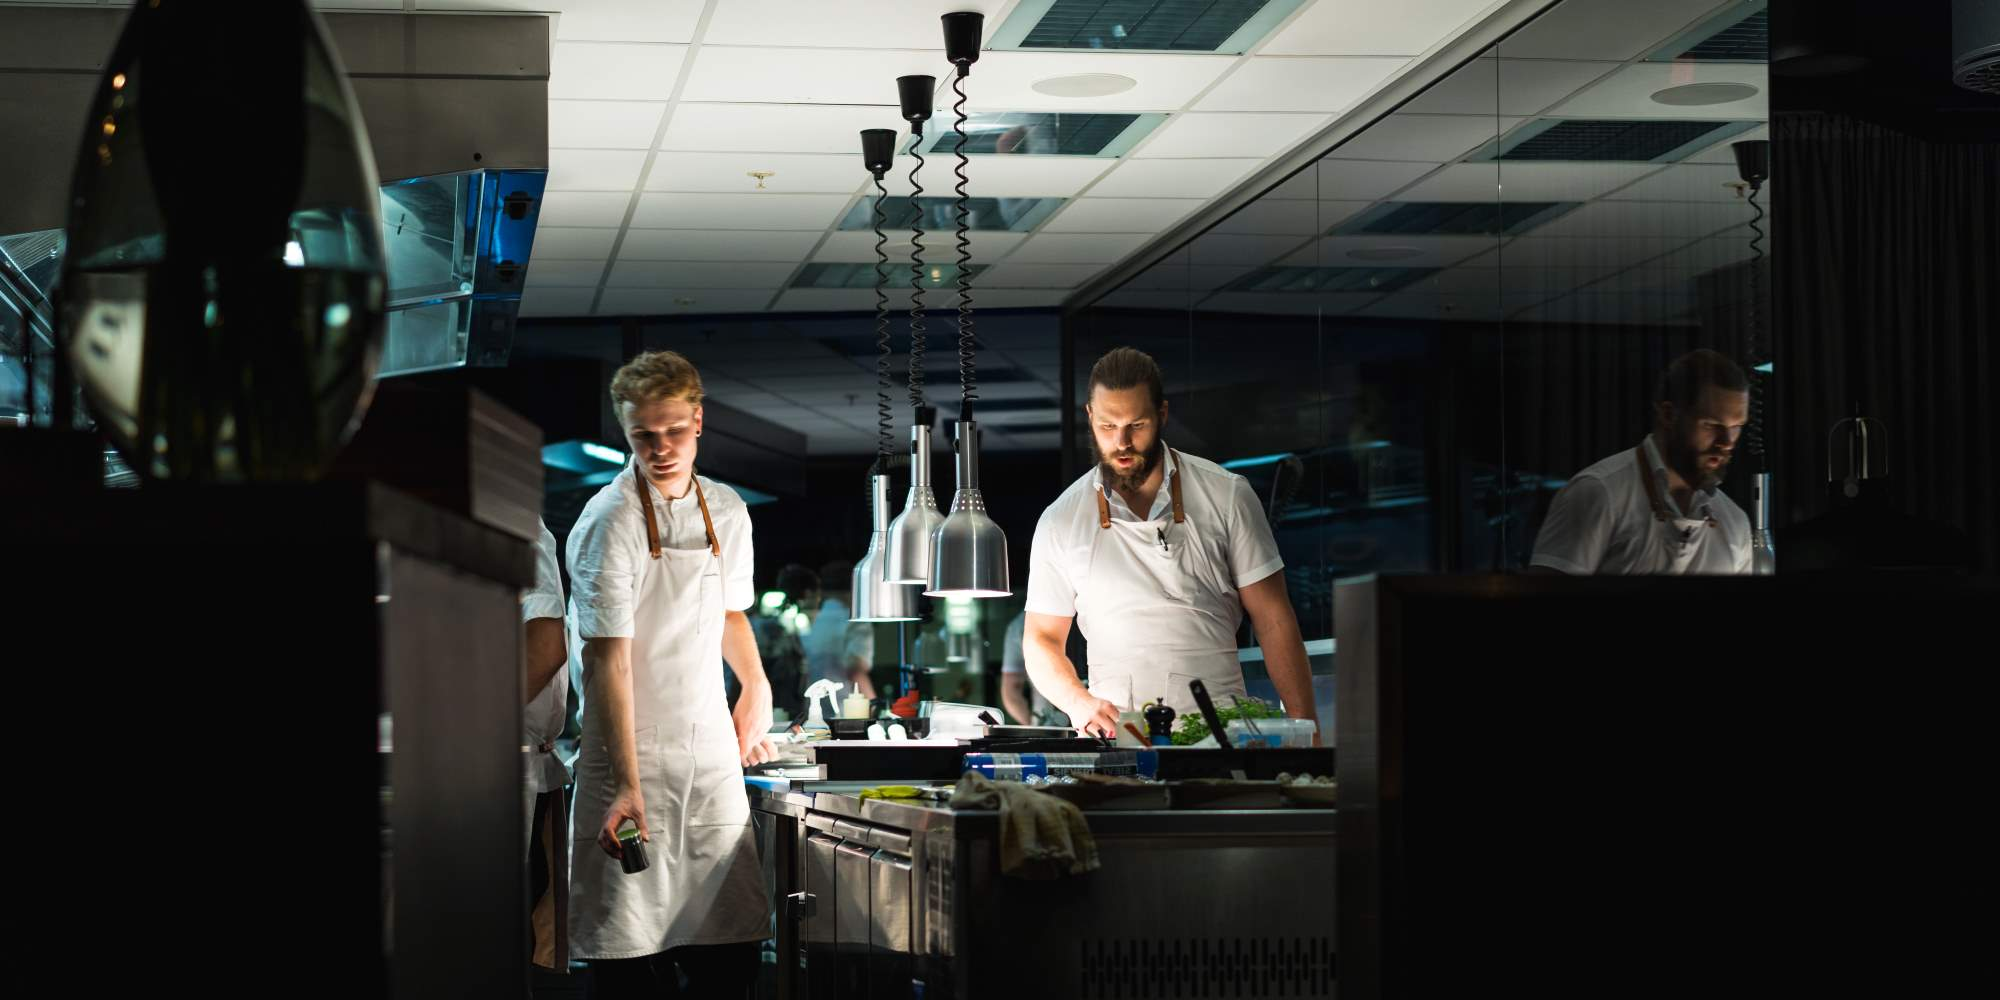 Chefs in the kitchen at Restaurant Kontrast